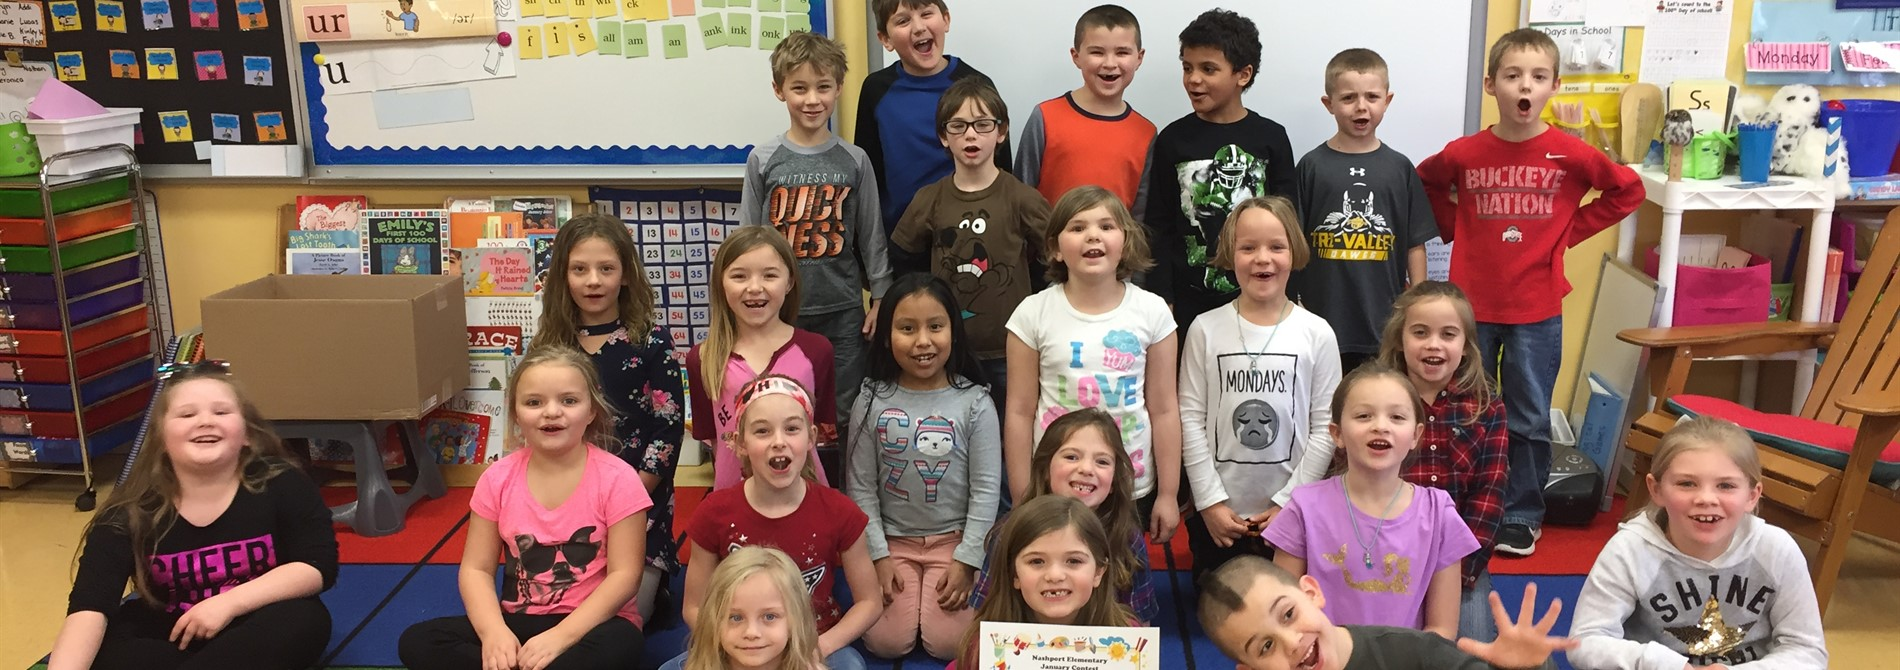 Mrs. Tracy's class collected 272 box tops to win the January award!